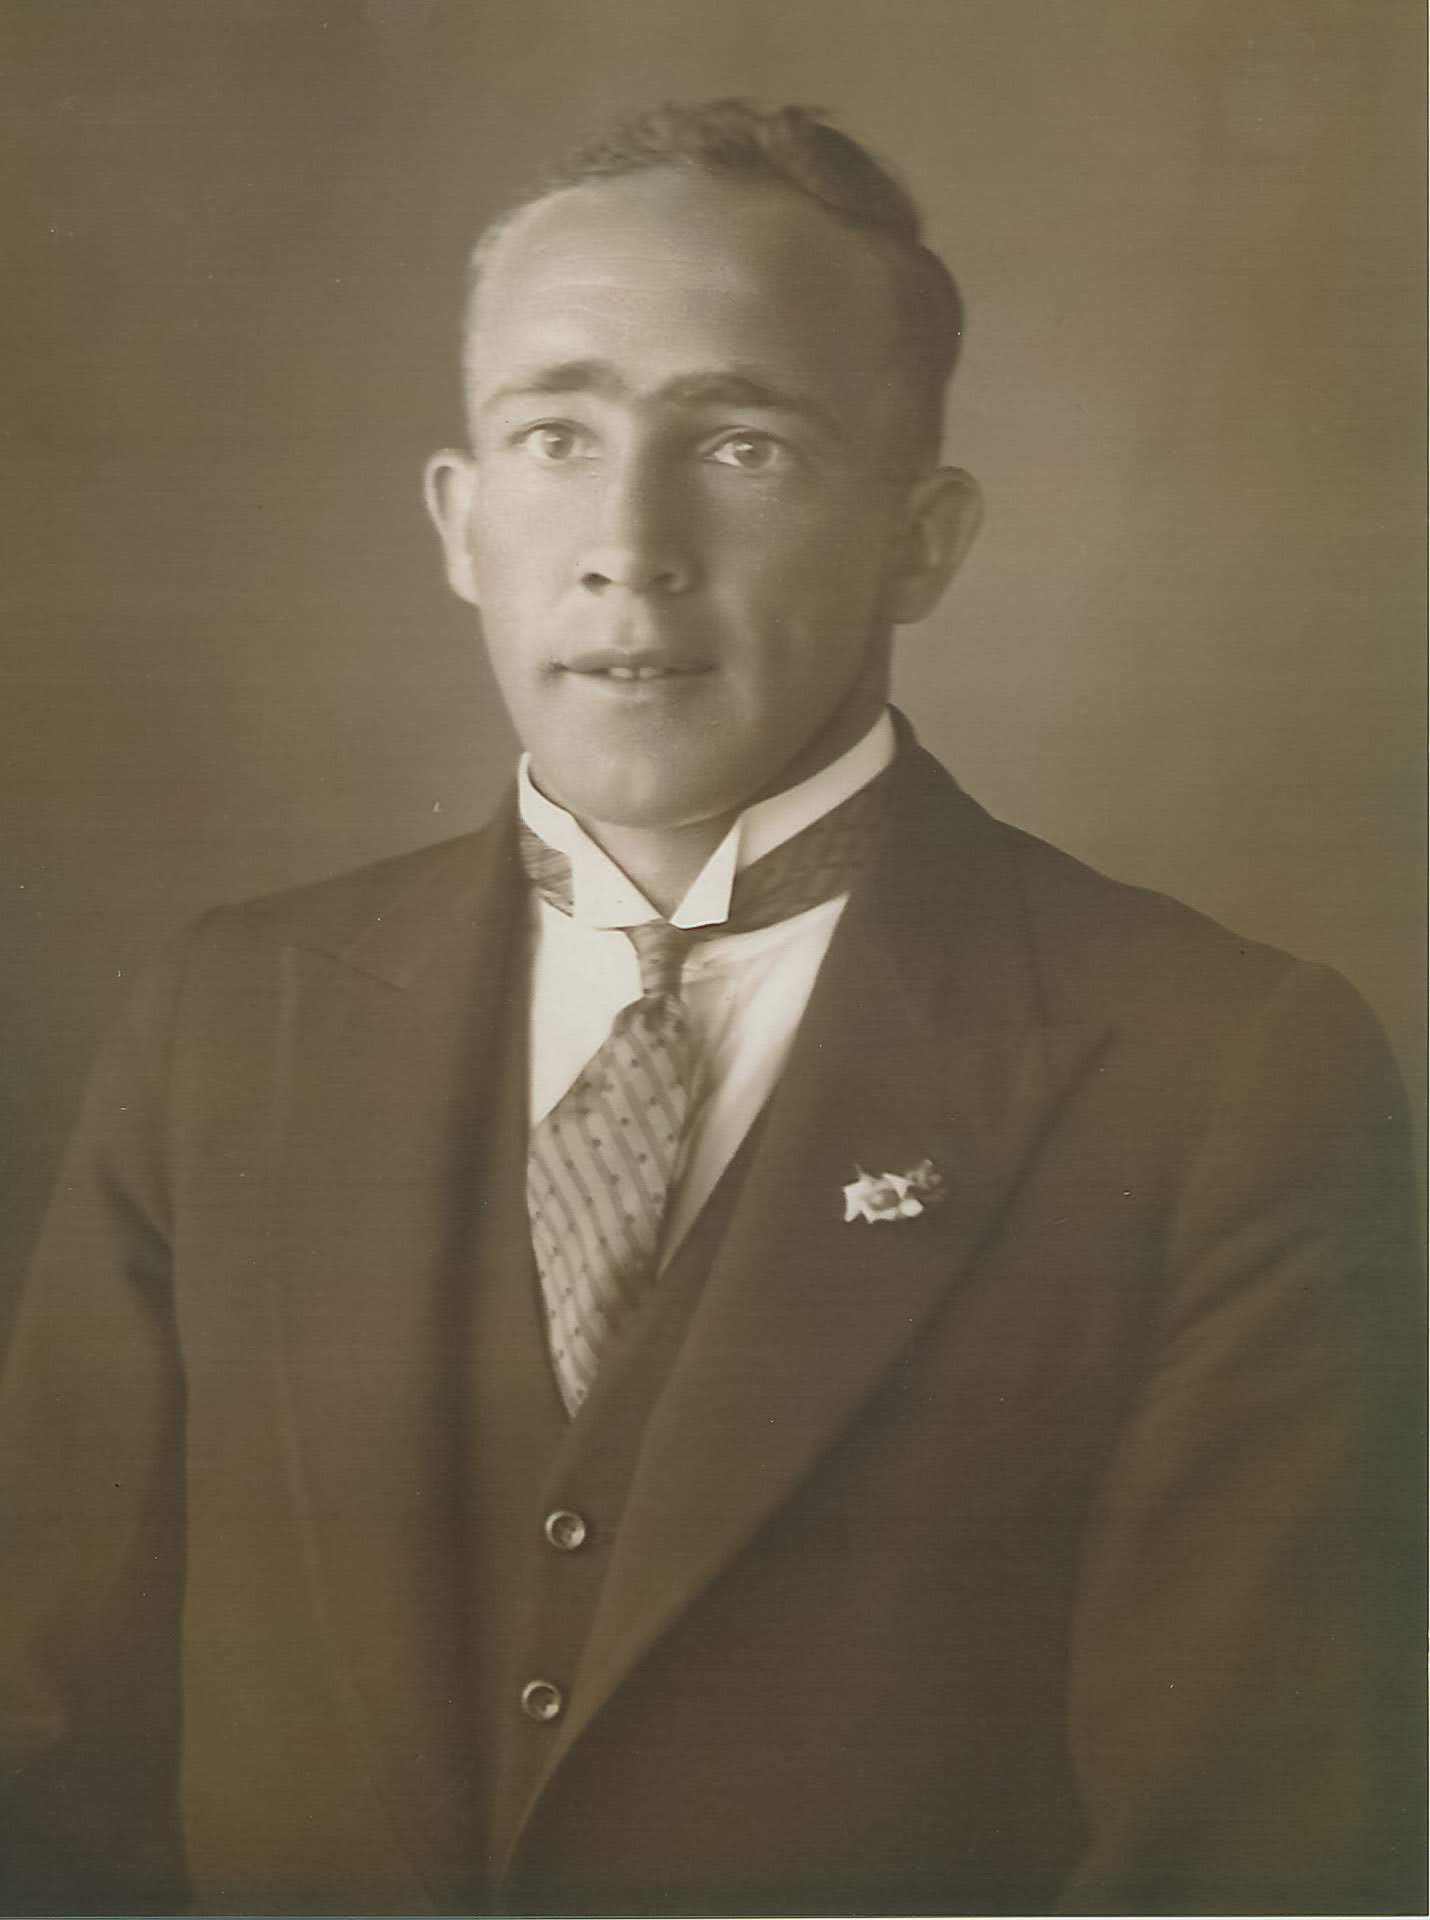 My father, James Chester Draper was born in 1905 at 'Barton Hill', and was known as Chester in the Arthurs Creek area so as not to be confused with his father, Jim Draper.  However my father was also known as Jim when he lived in Heyfield